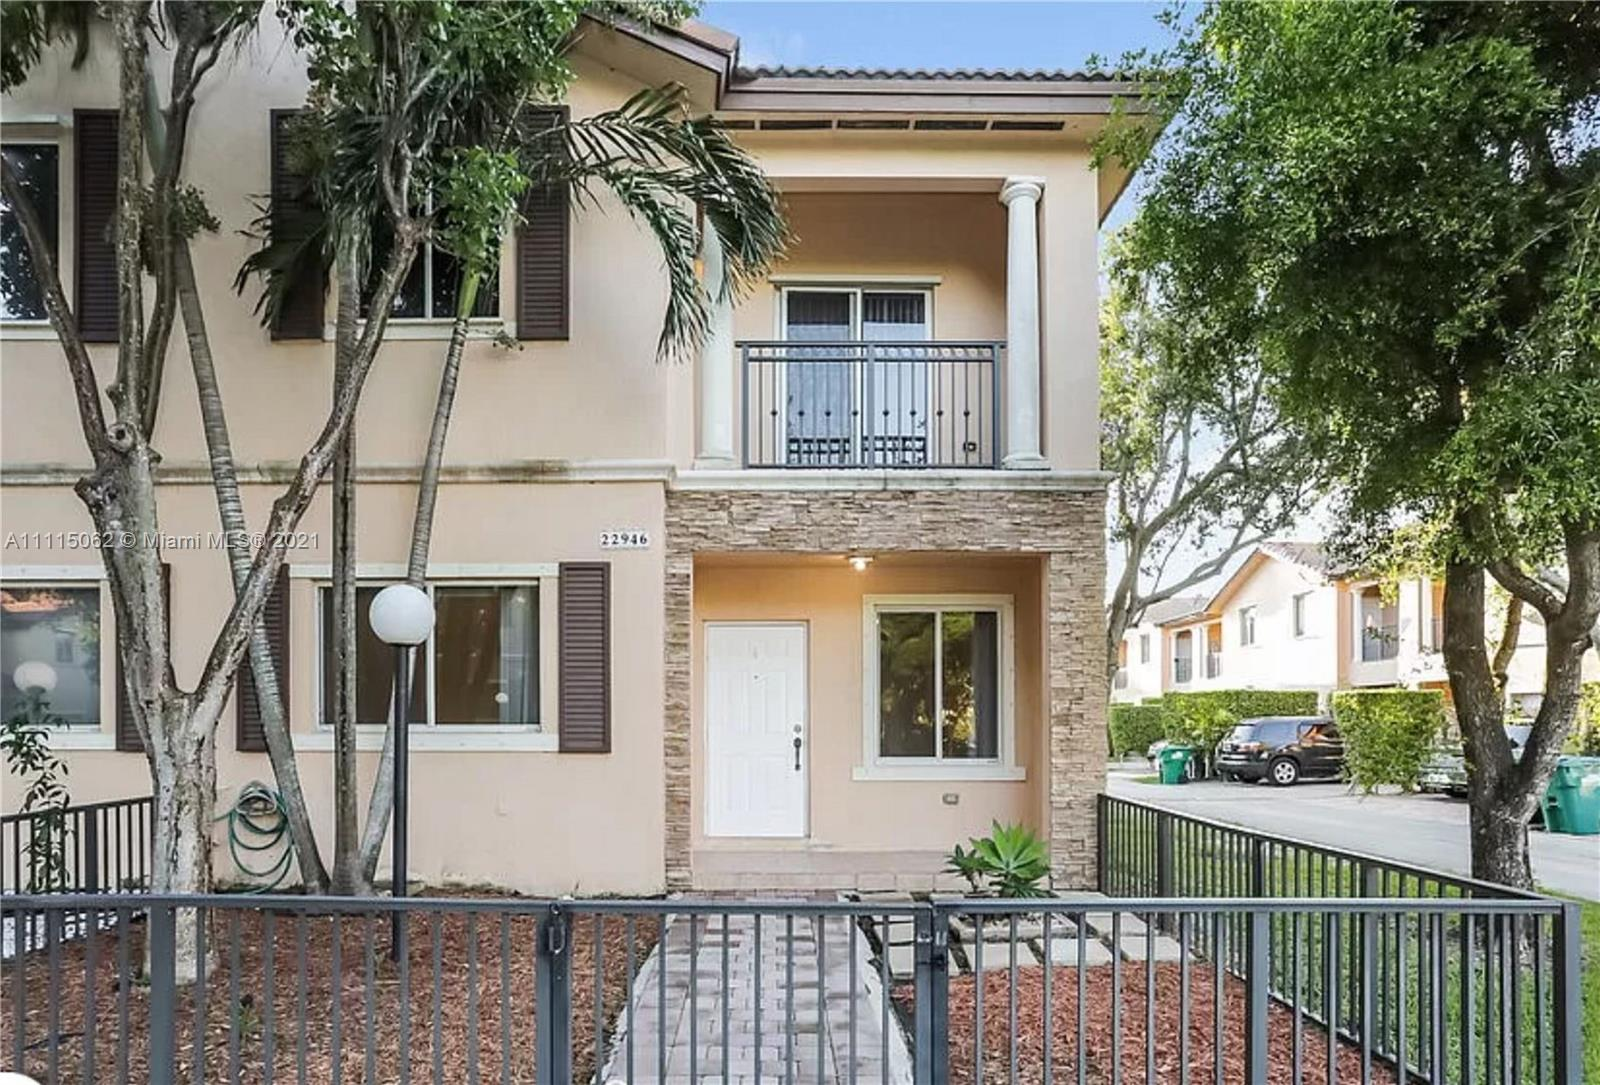 SILVER PALM HOMES Condo,For Rent,SILVER PALM HOMES Brickell,realty,broker,condos near me